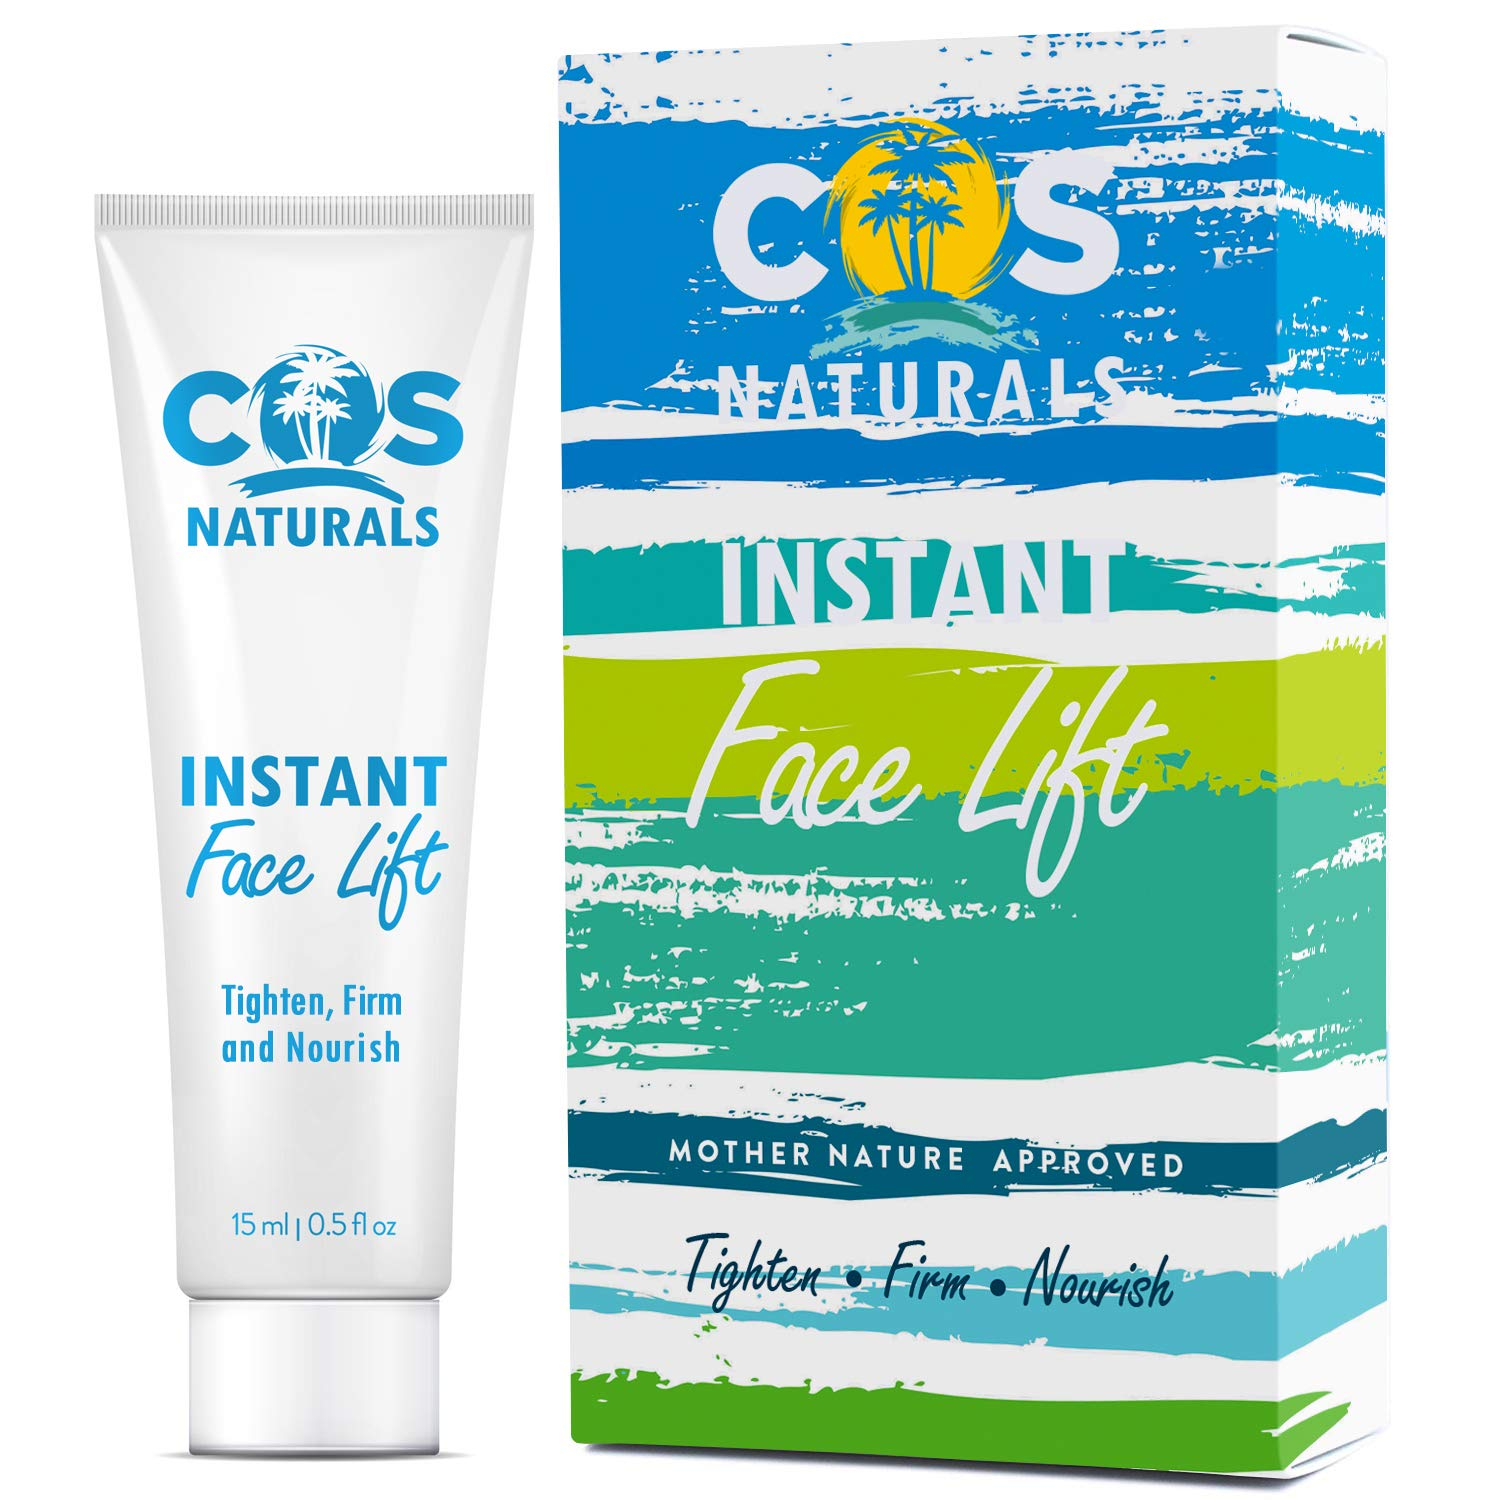 COS Naturals INSTANT FACE LIFT Tighten Firm And Nourish Natural & Organic Ingredients Anti Wrinkle Cream